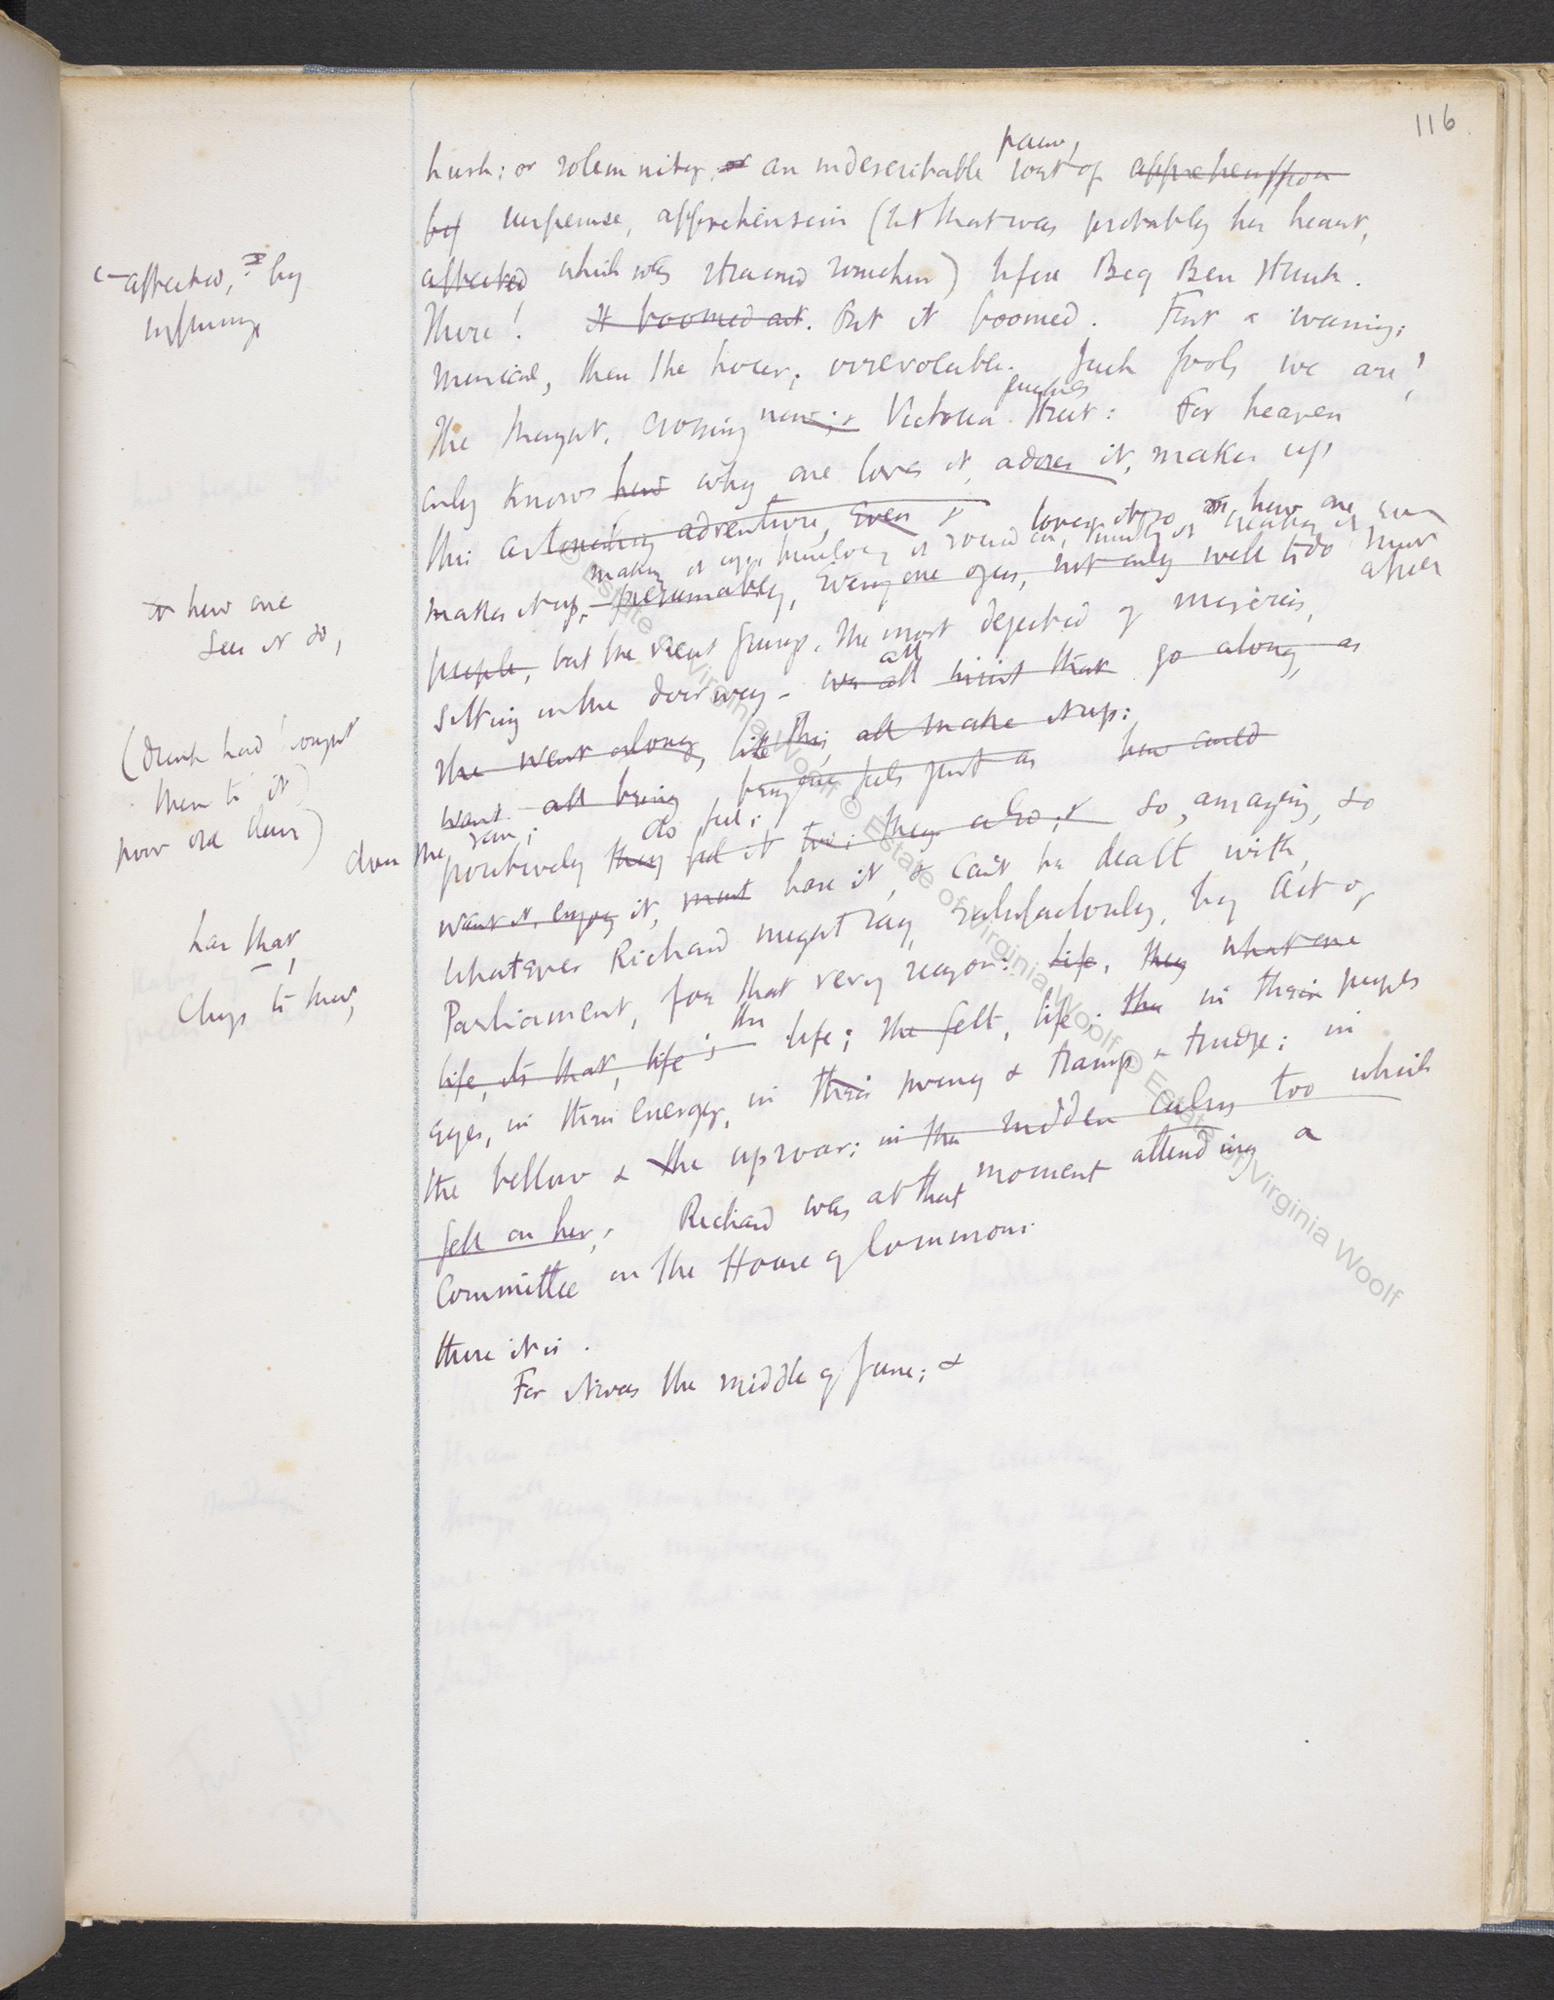 Notebook drafts of Virginia Woolf's Mrs Dalloway (Volume II)